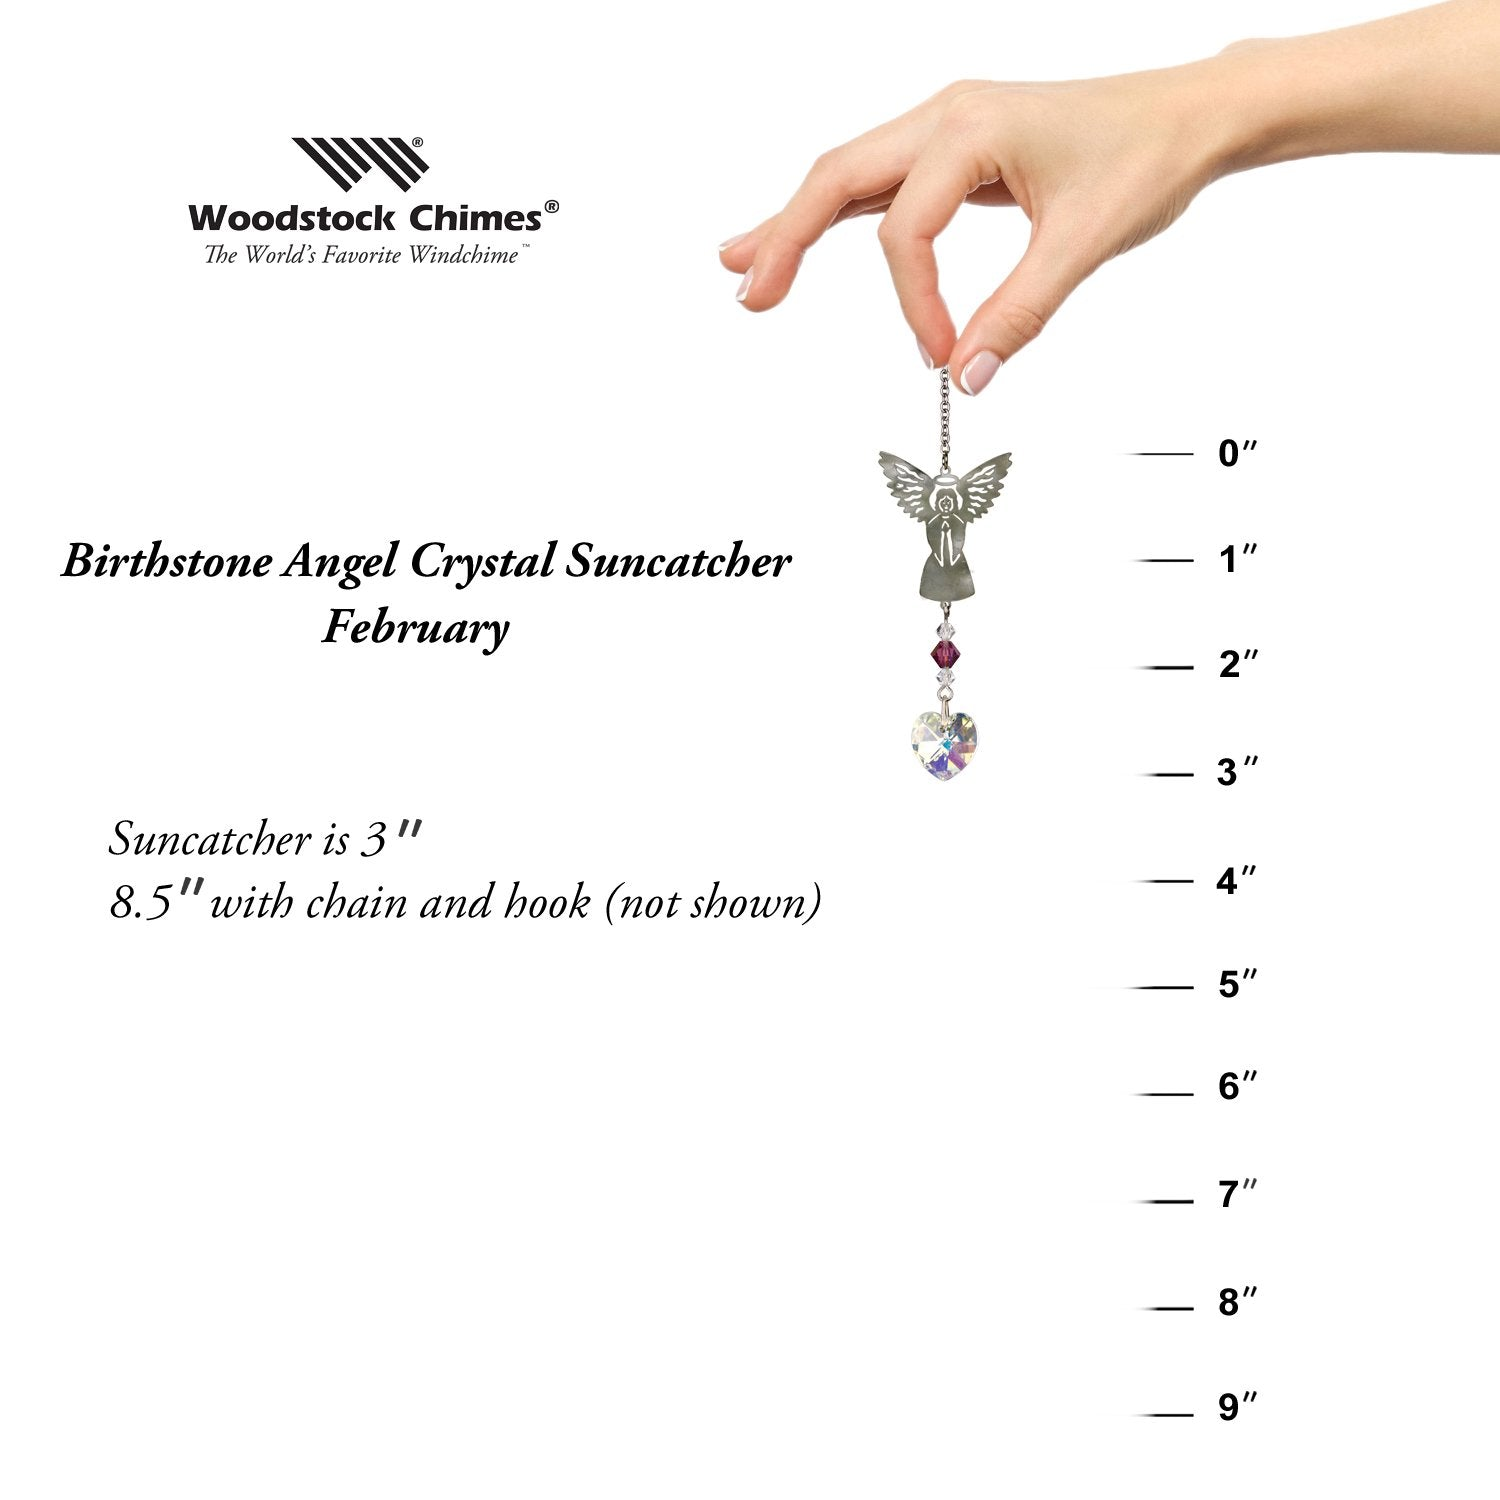 Birthstone Angel Crystal Suncatcher - February proportion image